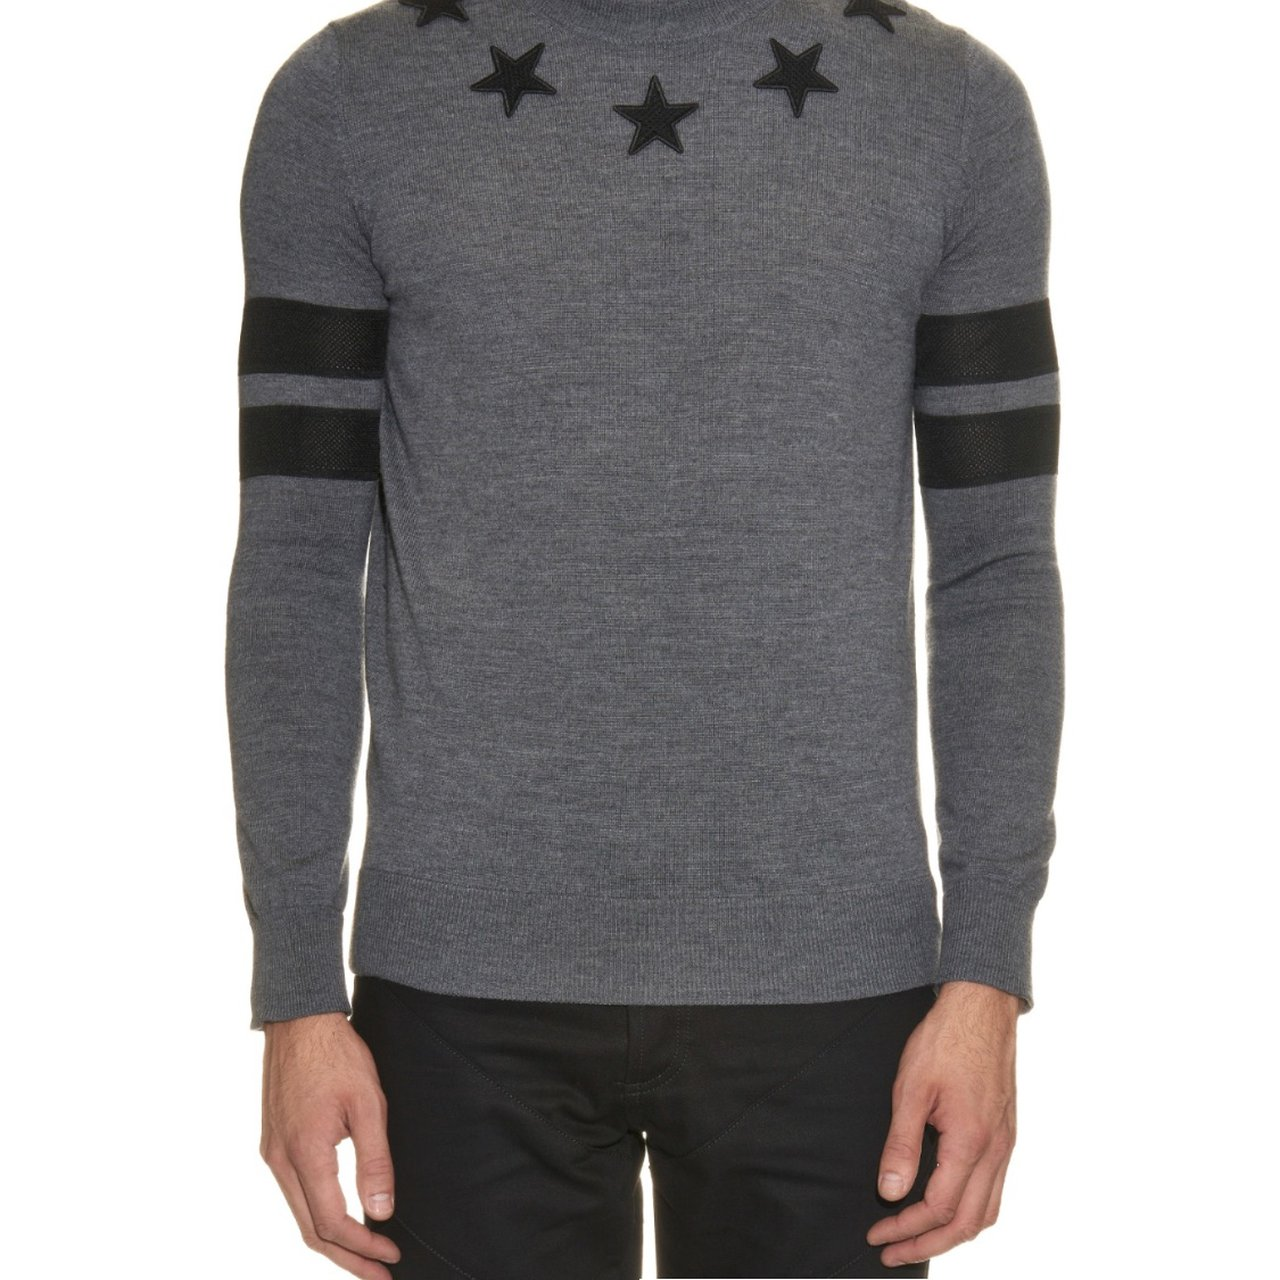 Givenchy Star-Patch Wool-Knit Sweater. Grey 062a8c448